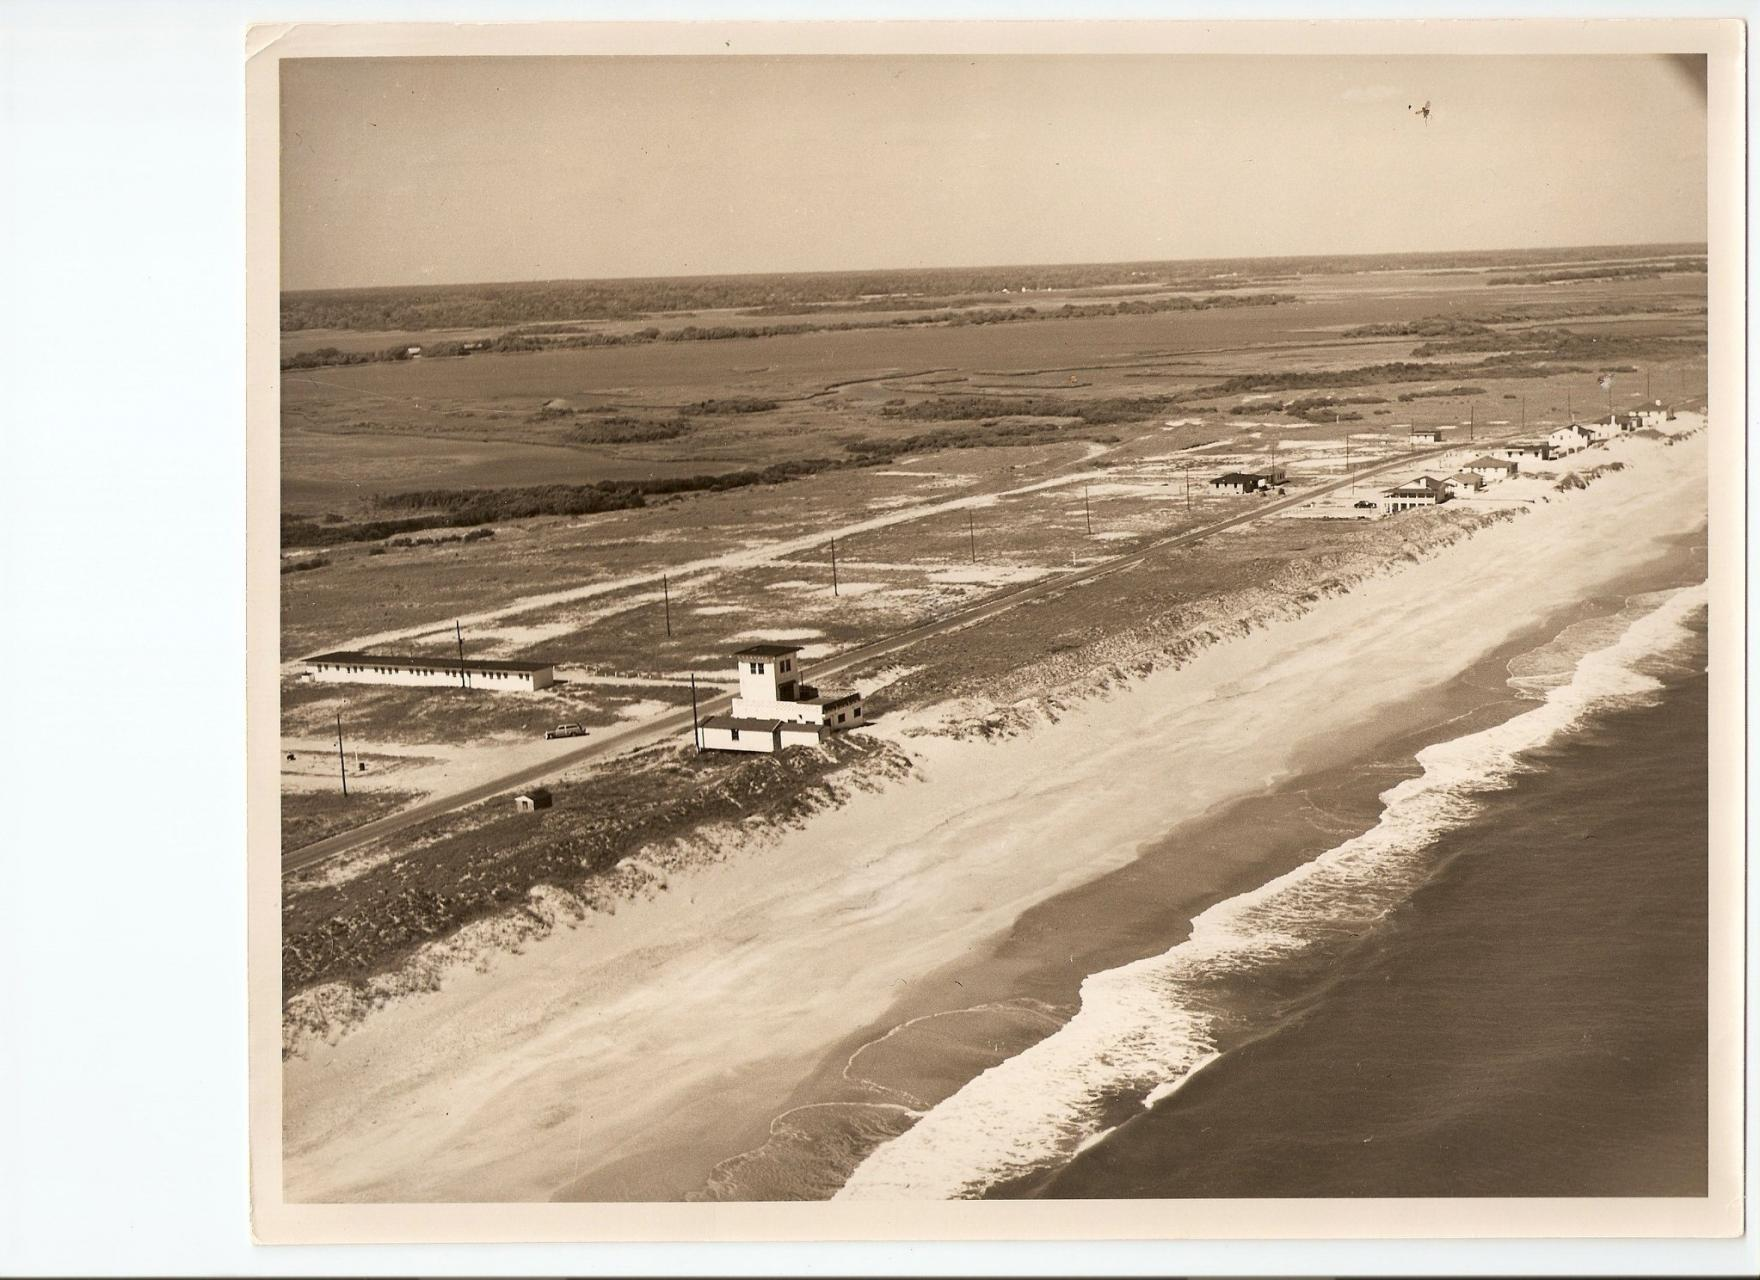 A bird's eye view of Ocean City Beach